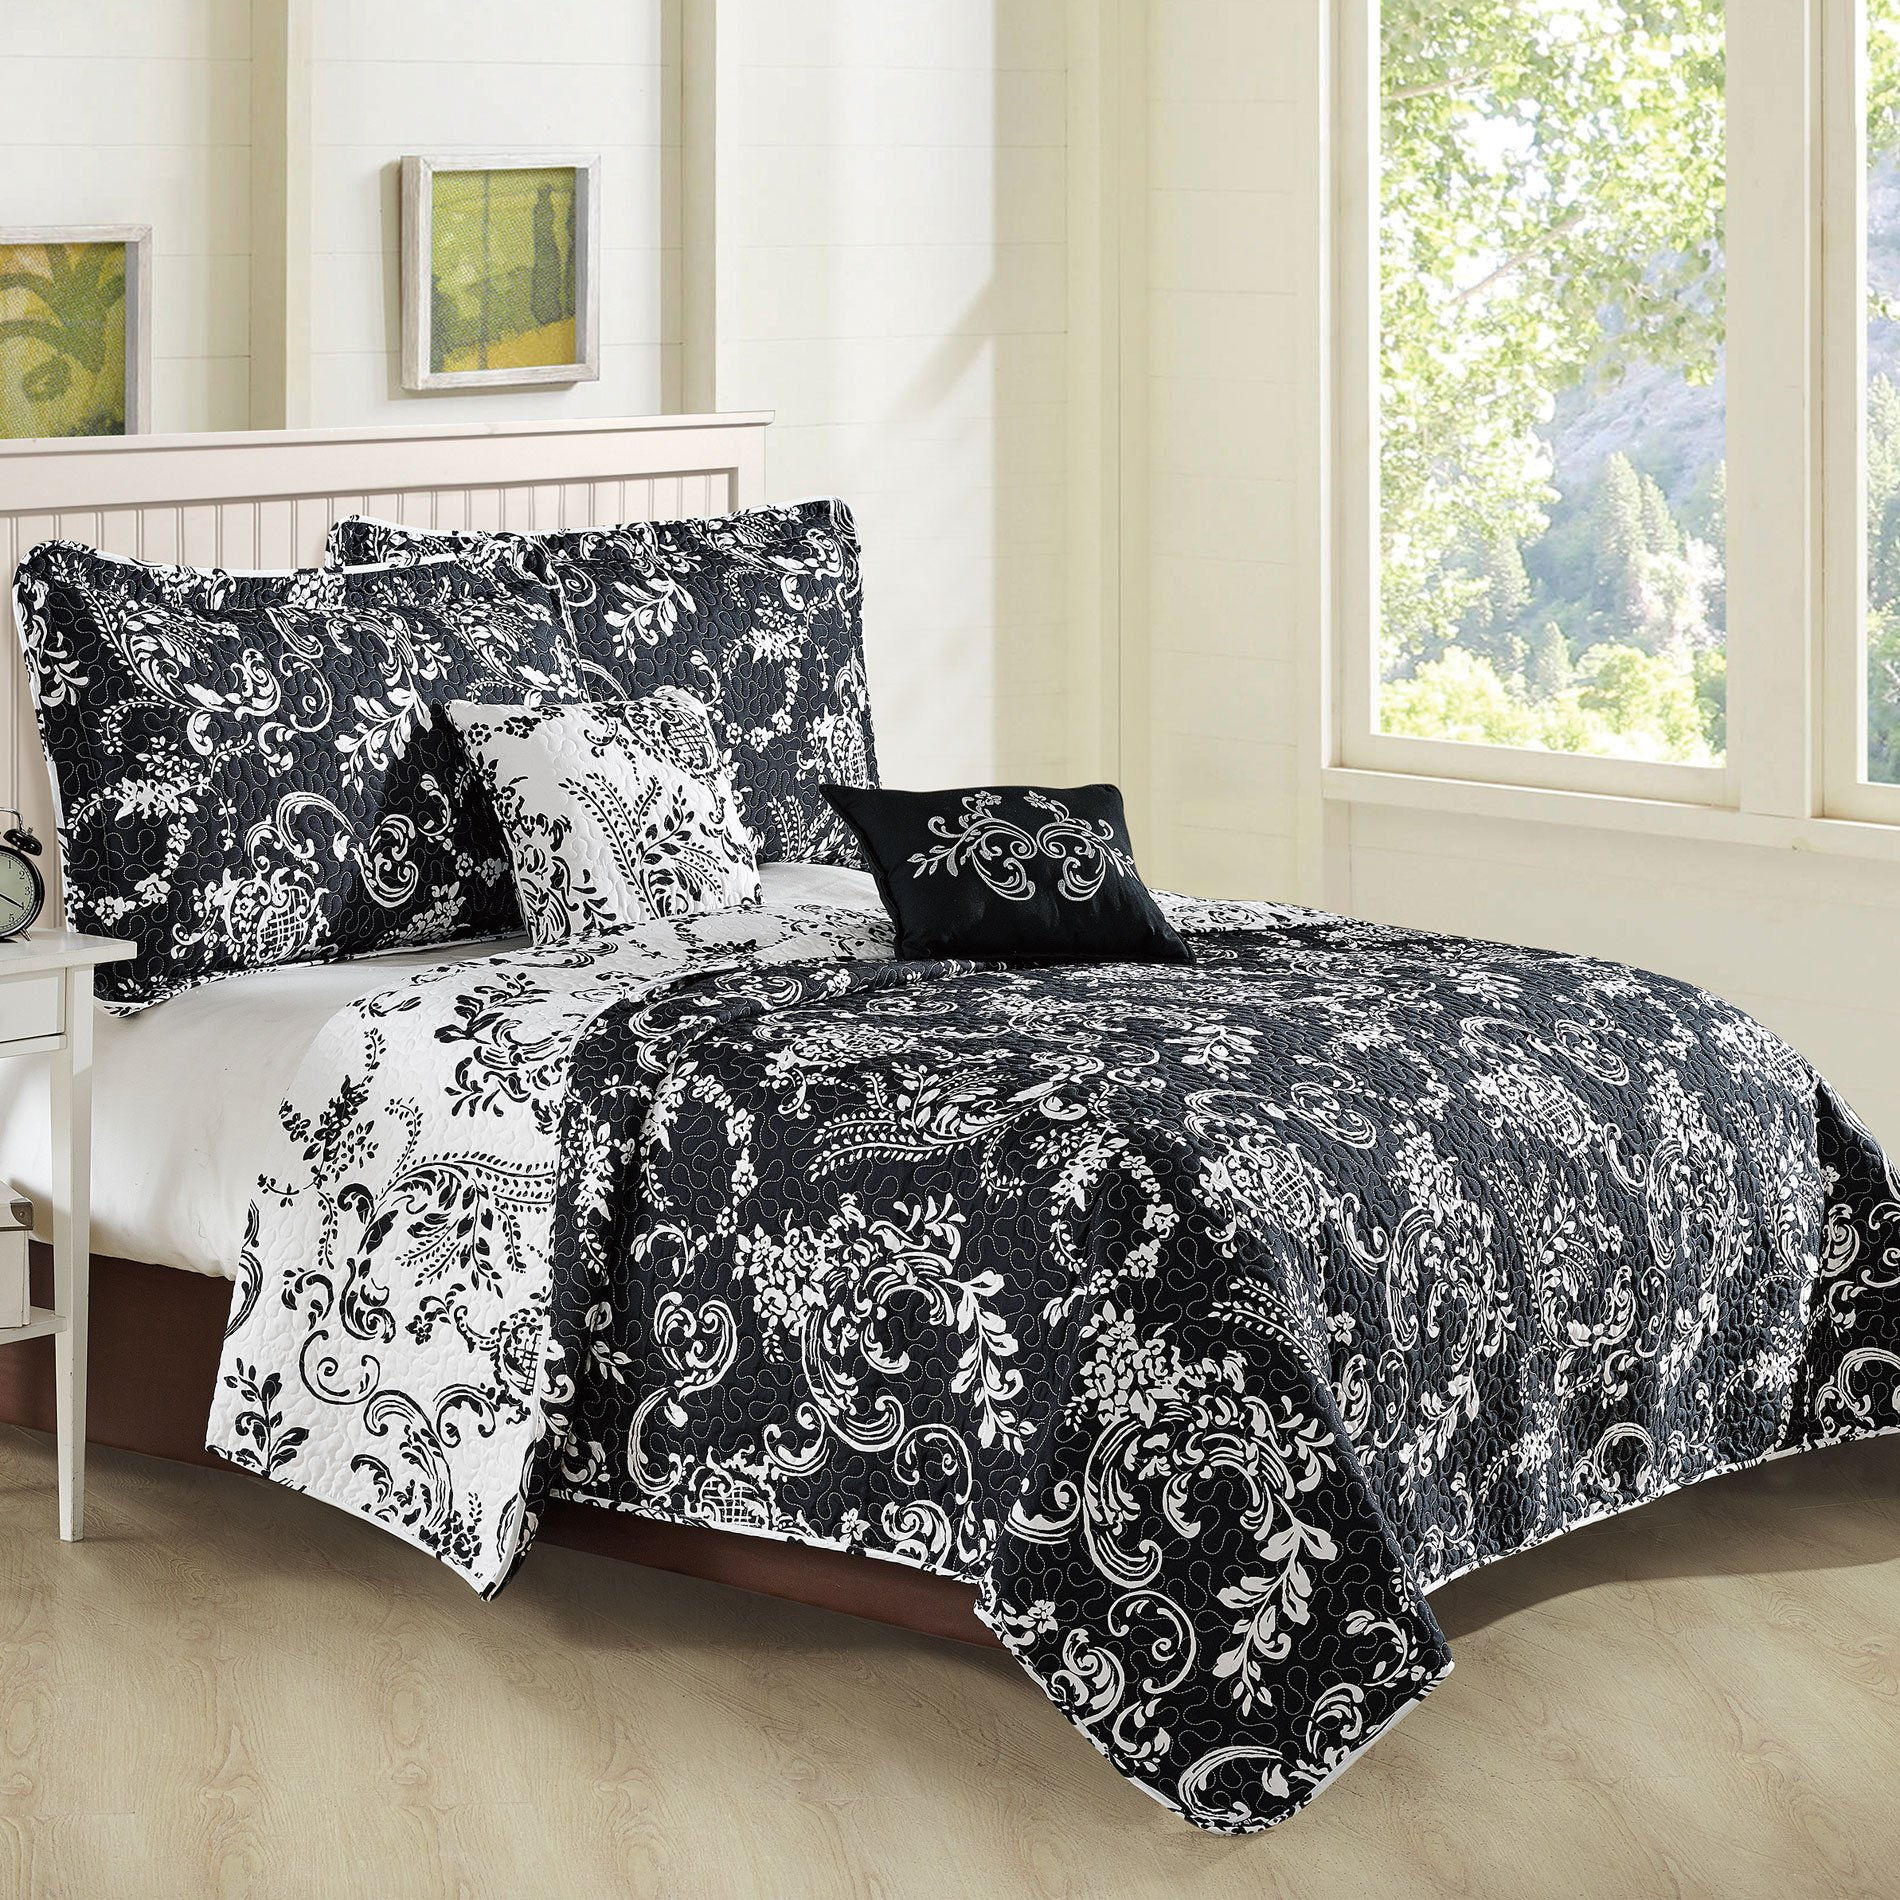 Home Soft Things 5 Piece LA Boheme Quilted Printed Bed Spread, Oversize King, Black